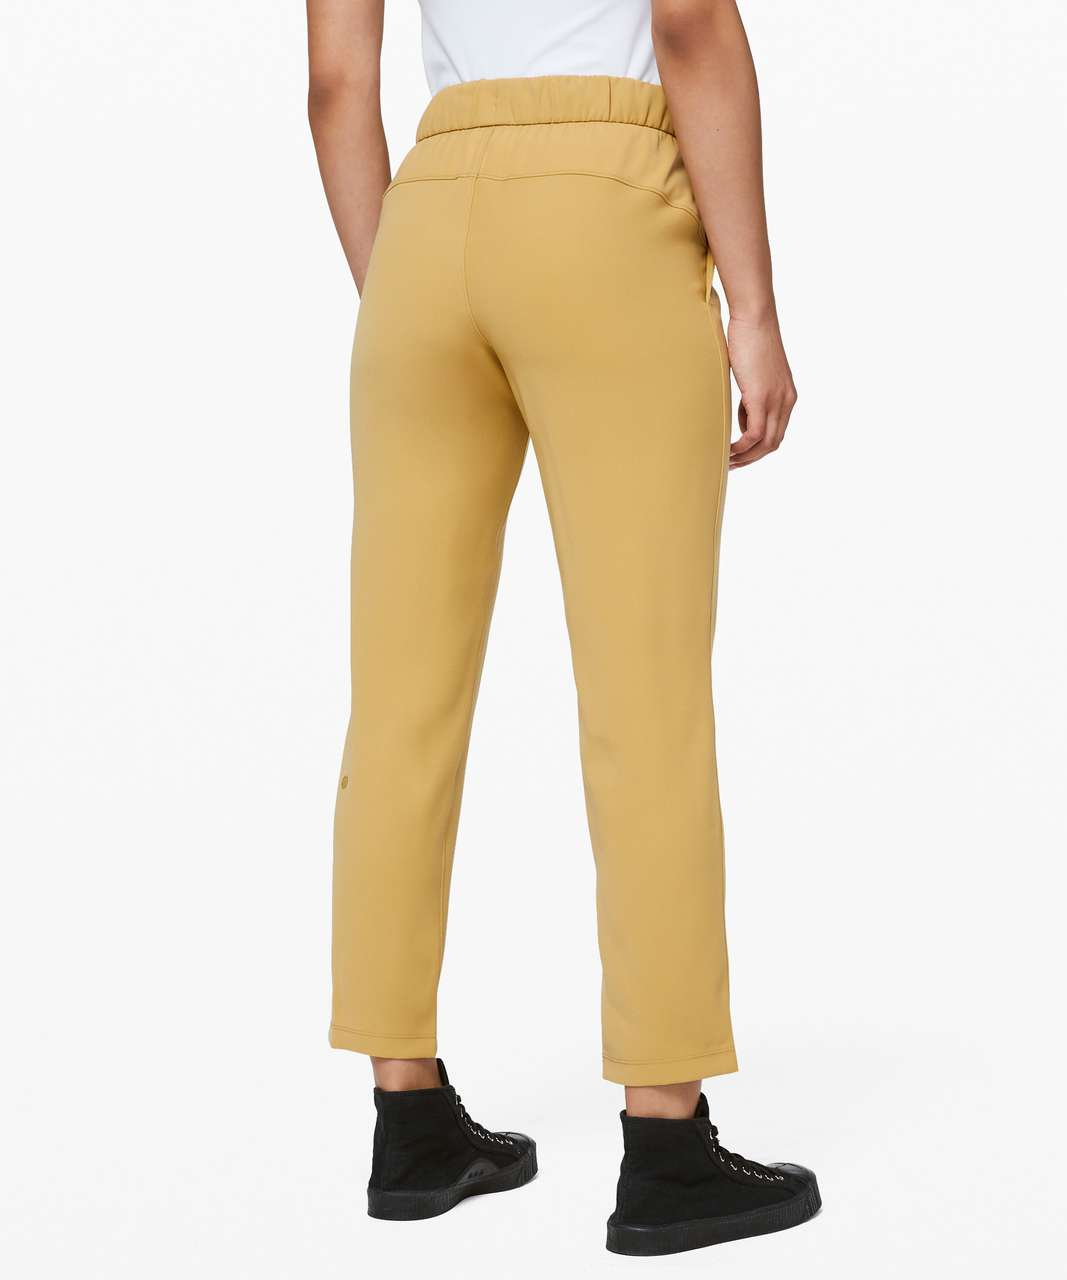 Lululemon On the Fly 7/8 Pant *Woven - Vintage Gold